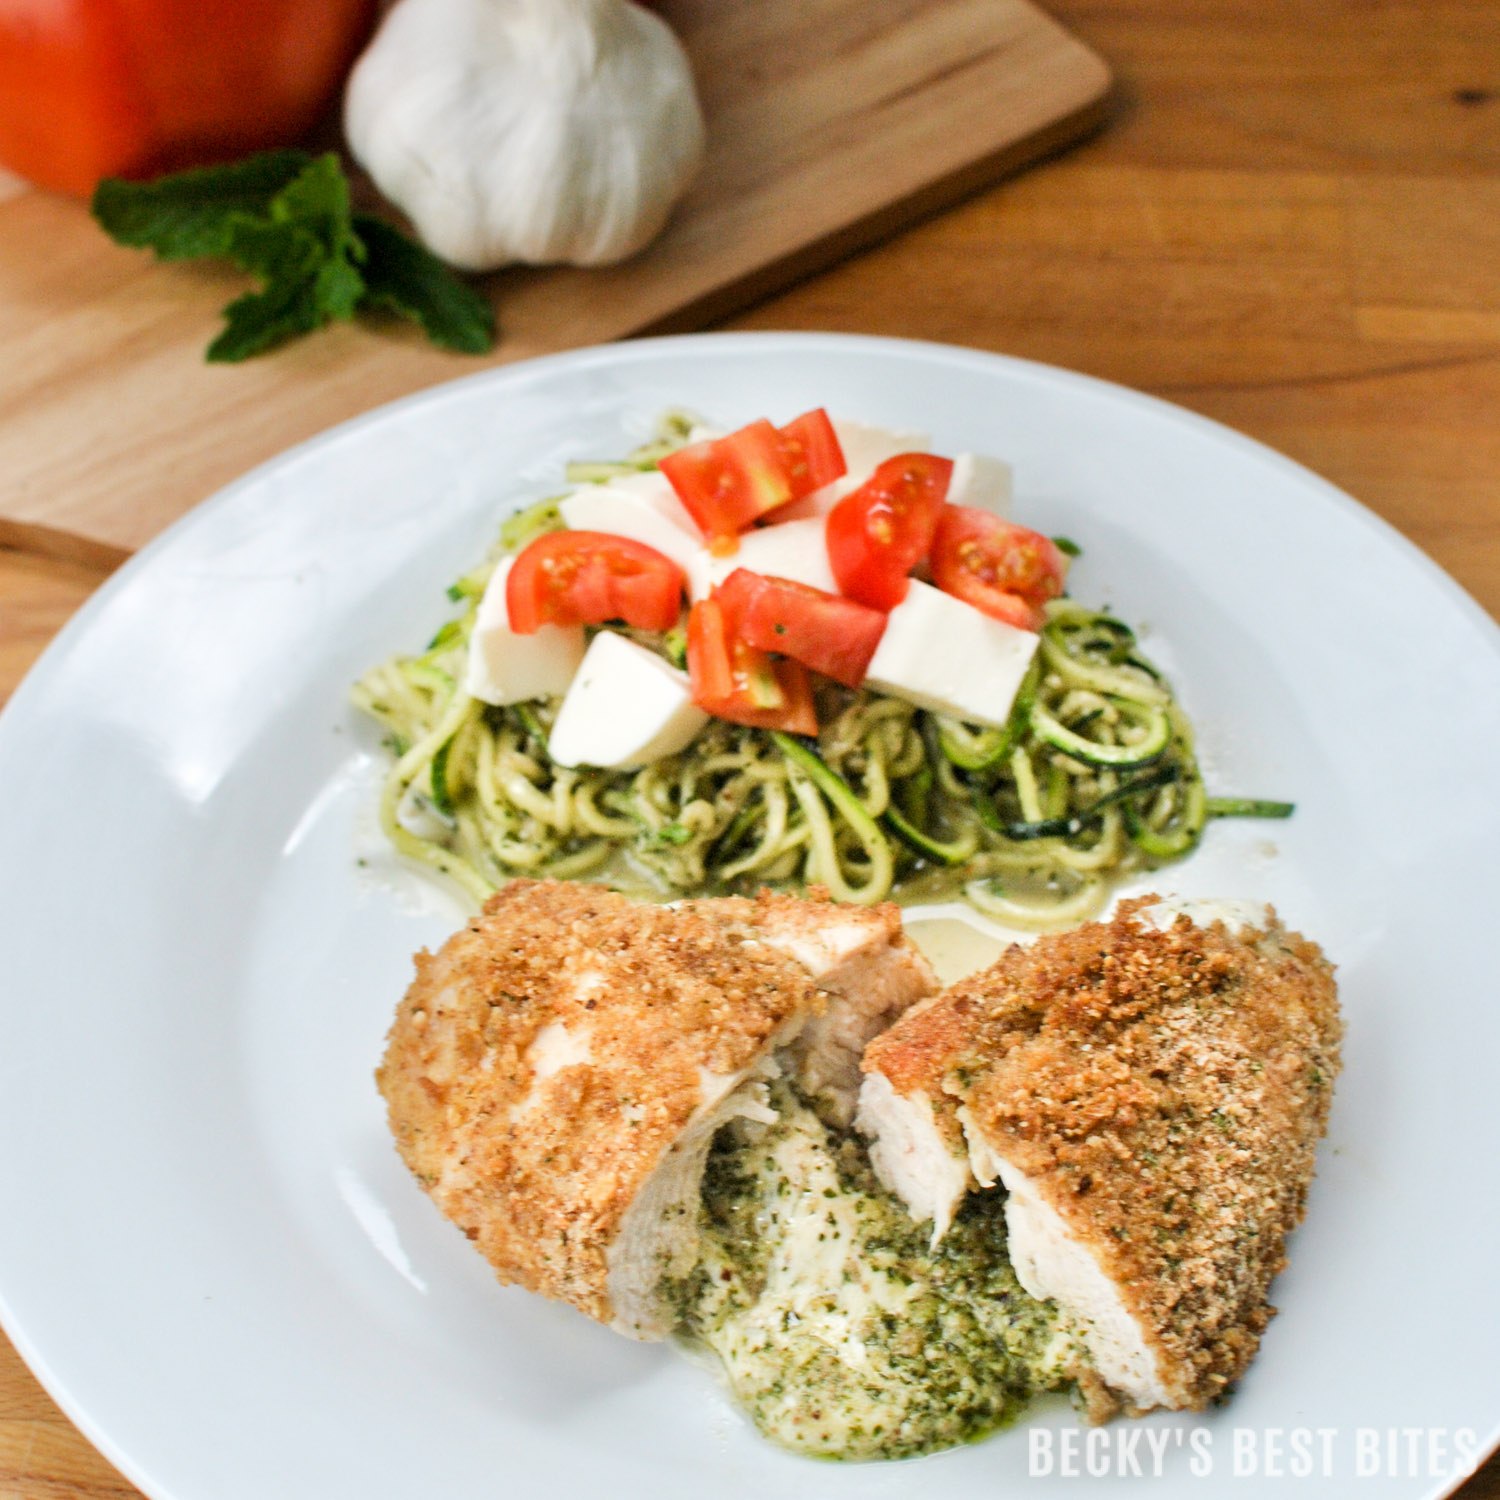 Lemon Mint Pesto and Mozzarella Stuffed Chicken with Zoodles is healthy and easy for any family meal or entertaining! Cooking Italian food doesn't have to be complicated! Try this tasty recipe made with Stella® Fresh Mozzarella! | beckysbestbites.com #FreshisBest